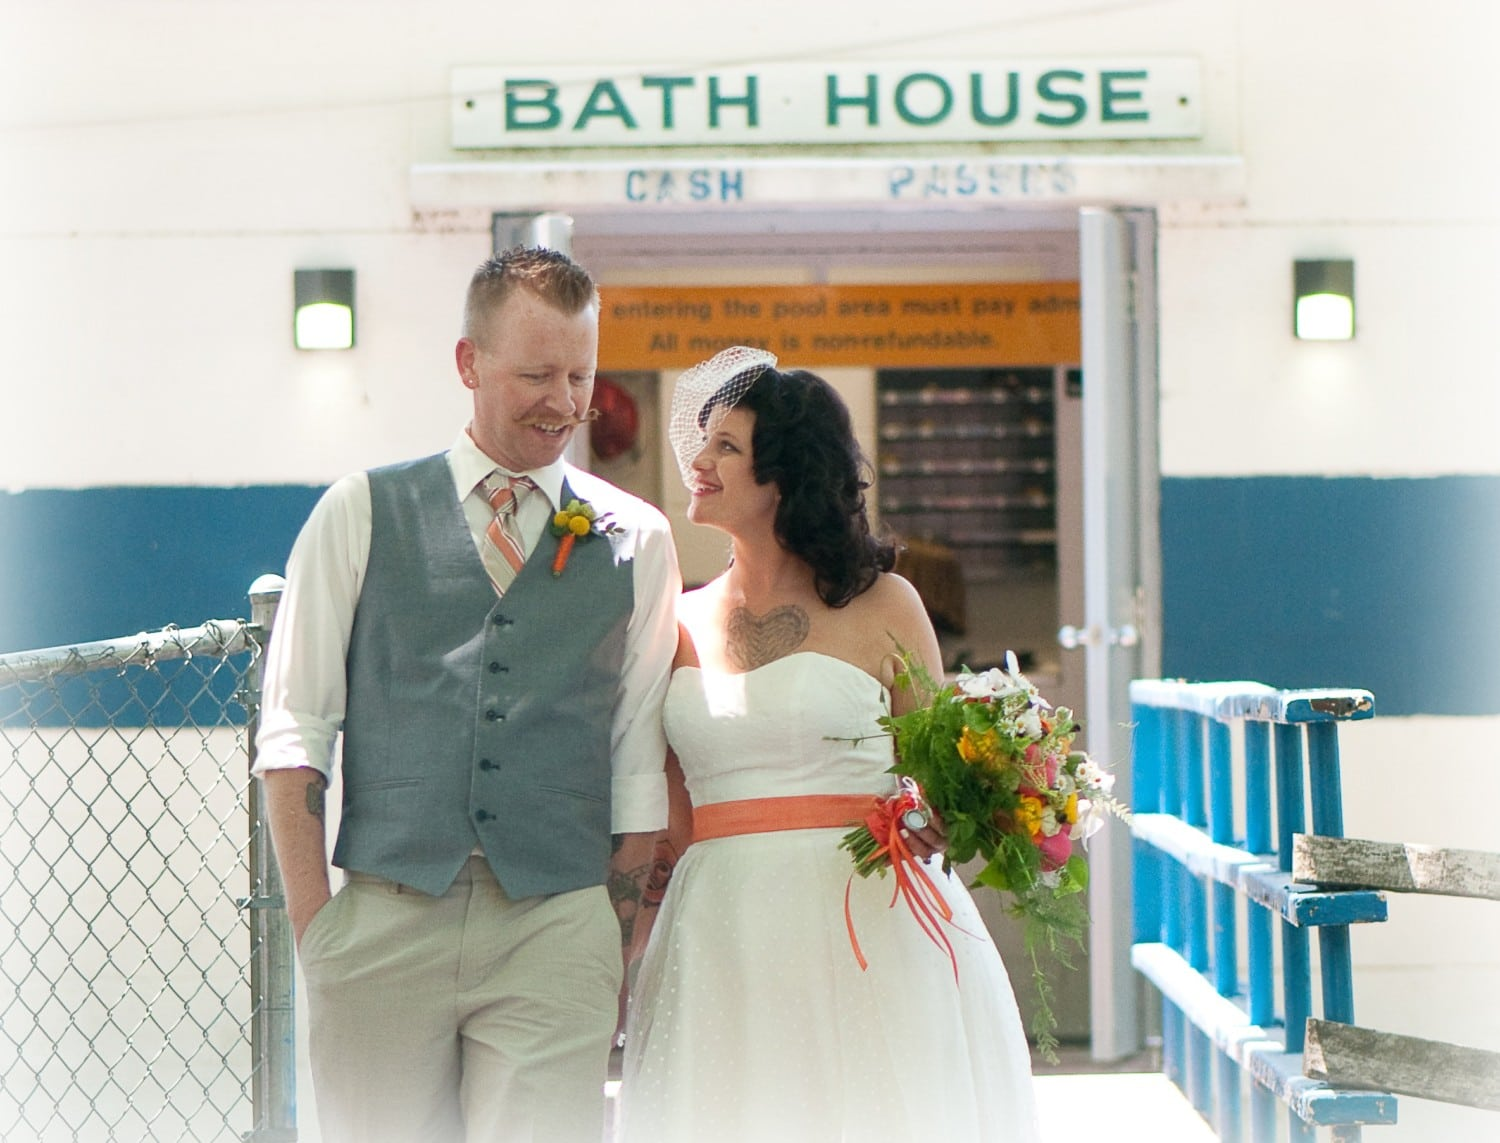 couple at bath house wedding photography